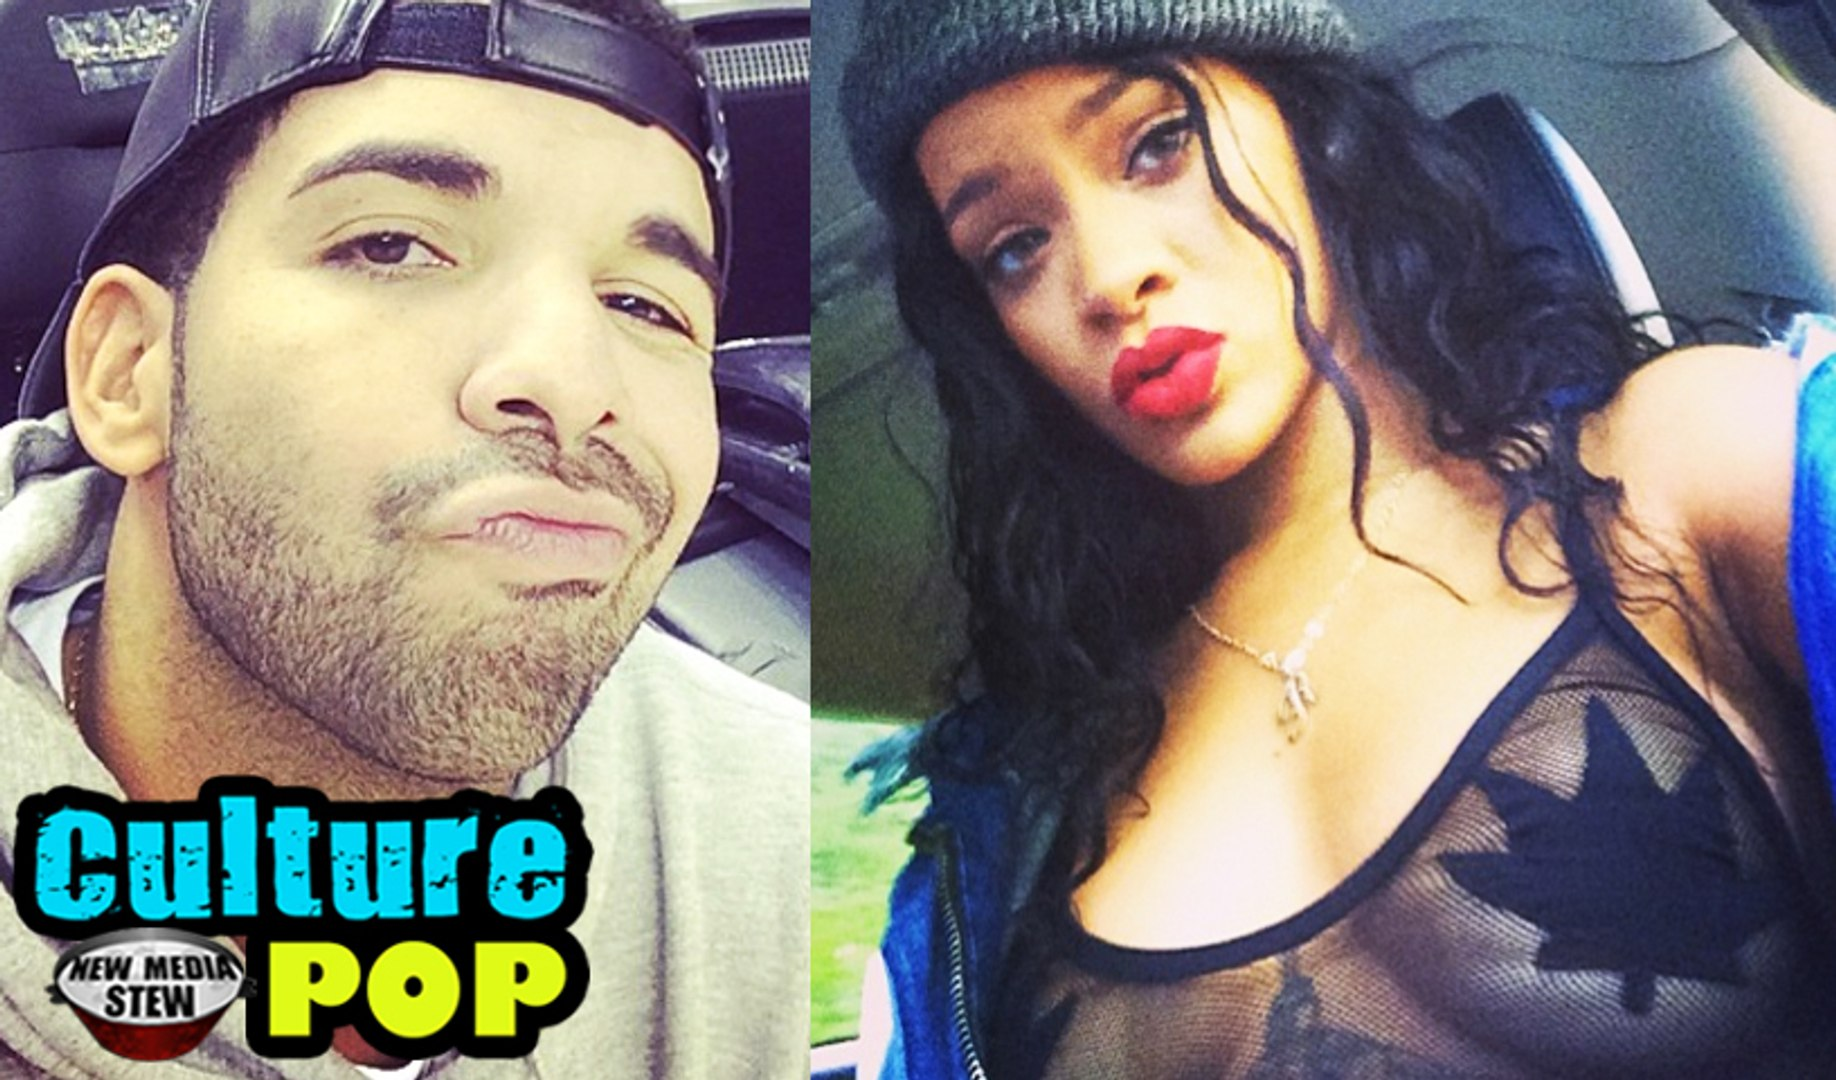 RIHANNA, DRAKE Challenge KIM, KANYE for Most Talked About Celeb Couple - NMS Culture Pop #44